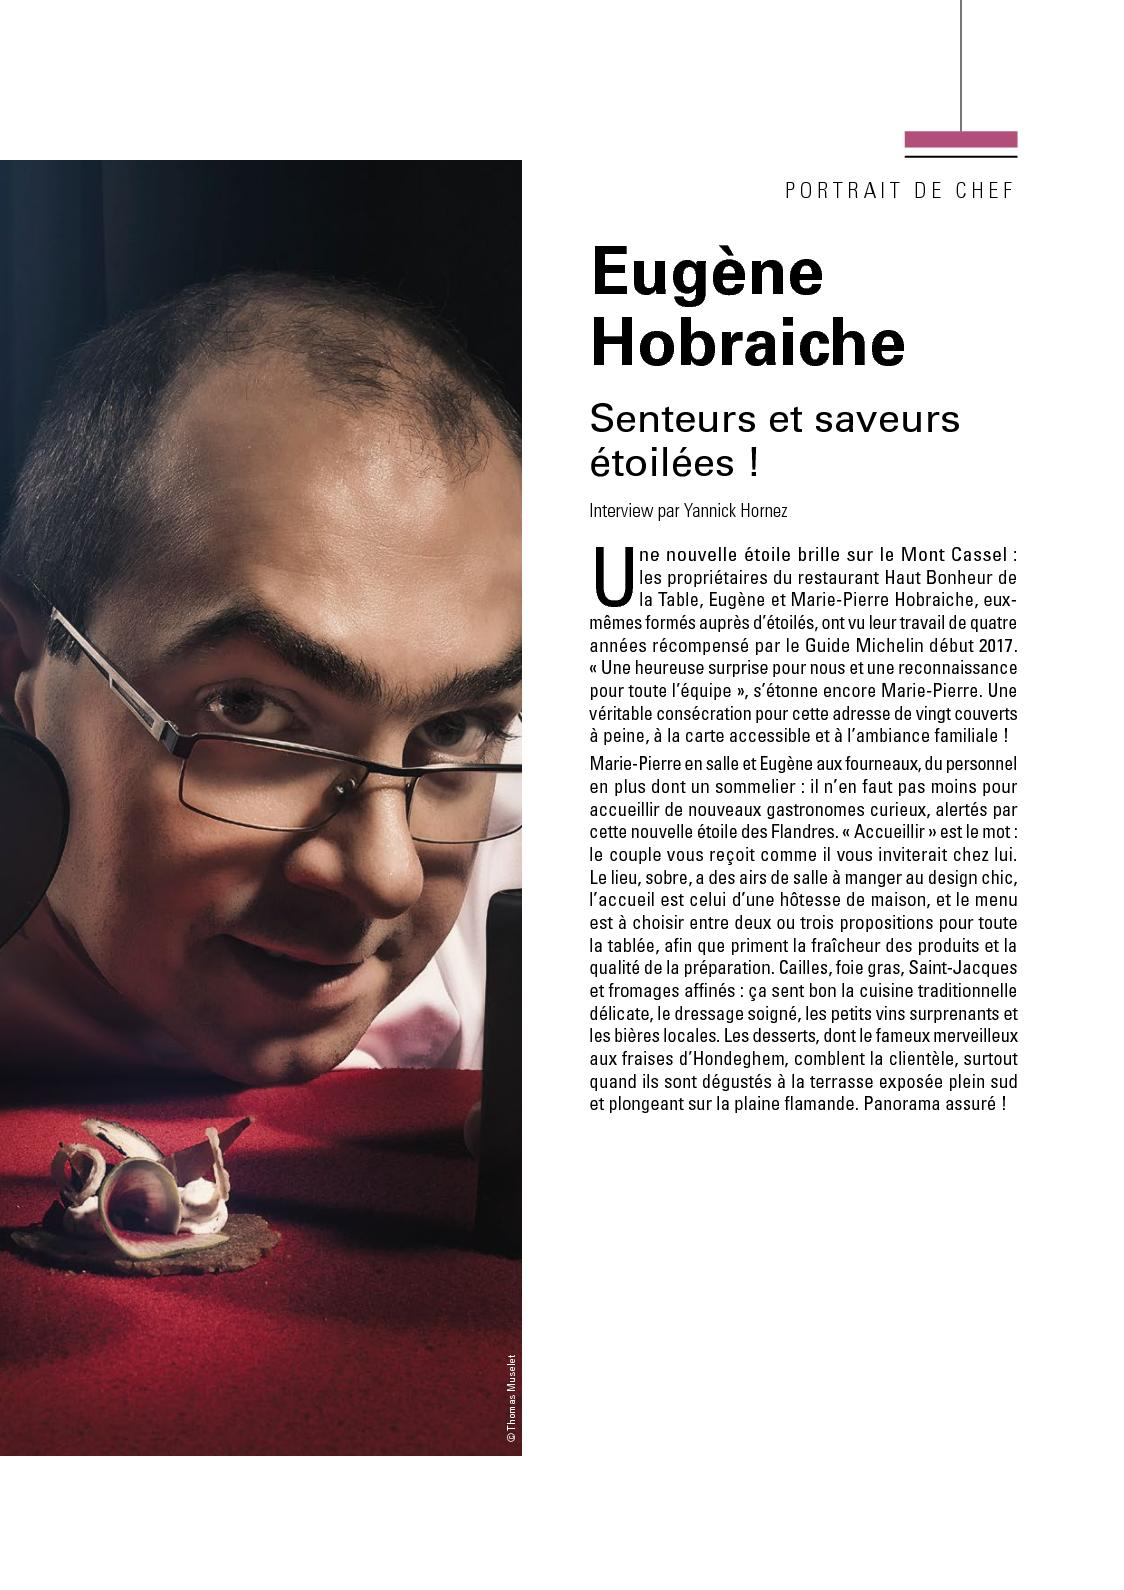 Calam o article eug ne hobraiche journal part 12 - Haut bonheur de la table cassel ...